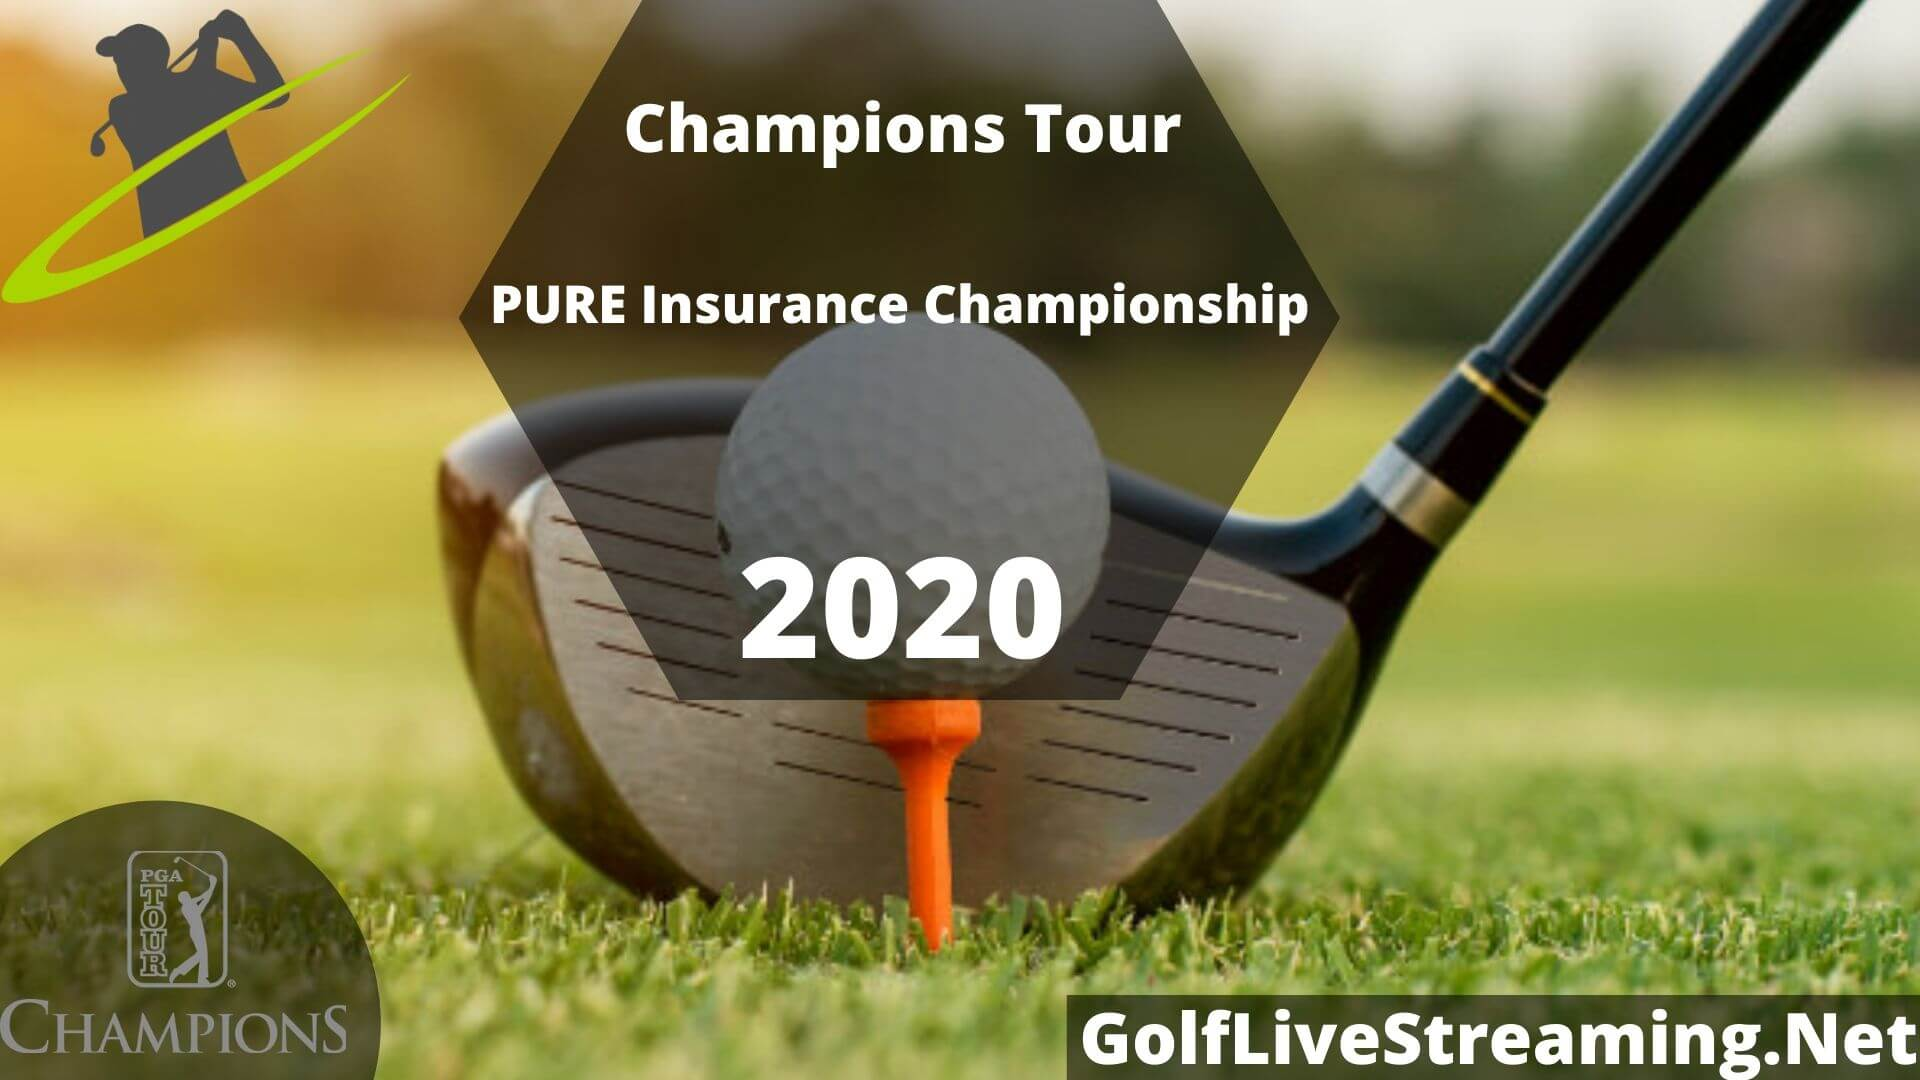 PURE Insurance Championship Live Stream 2020 | Champions Tour Round 3